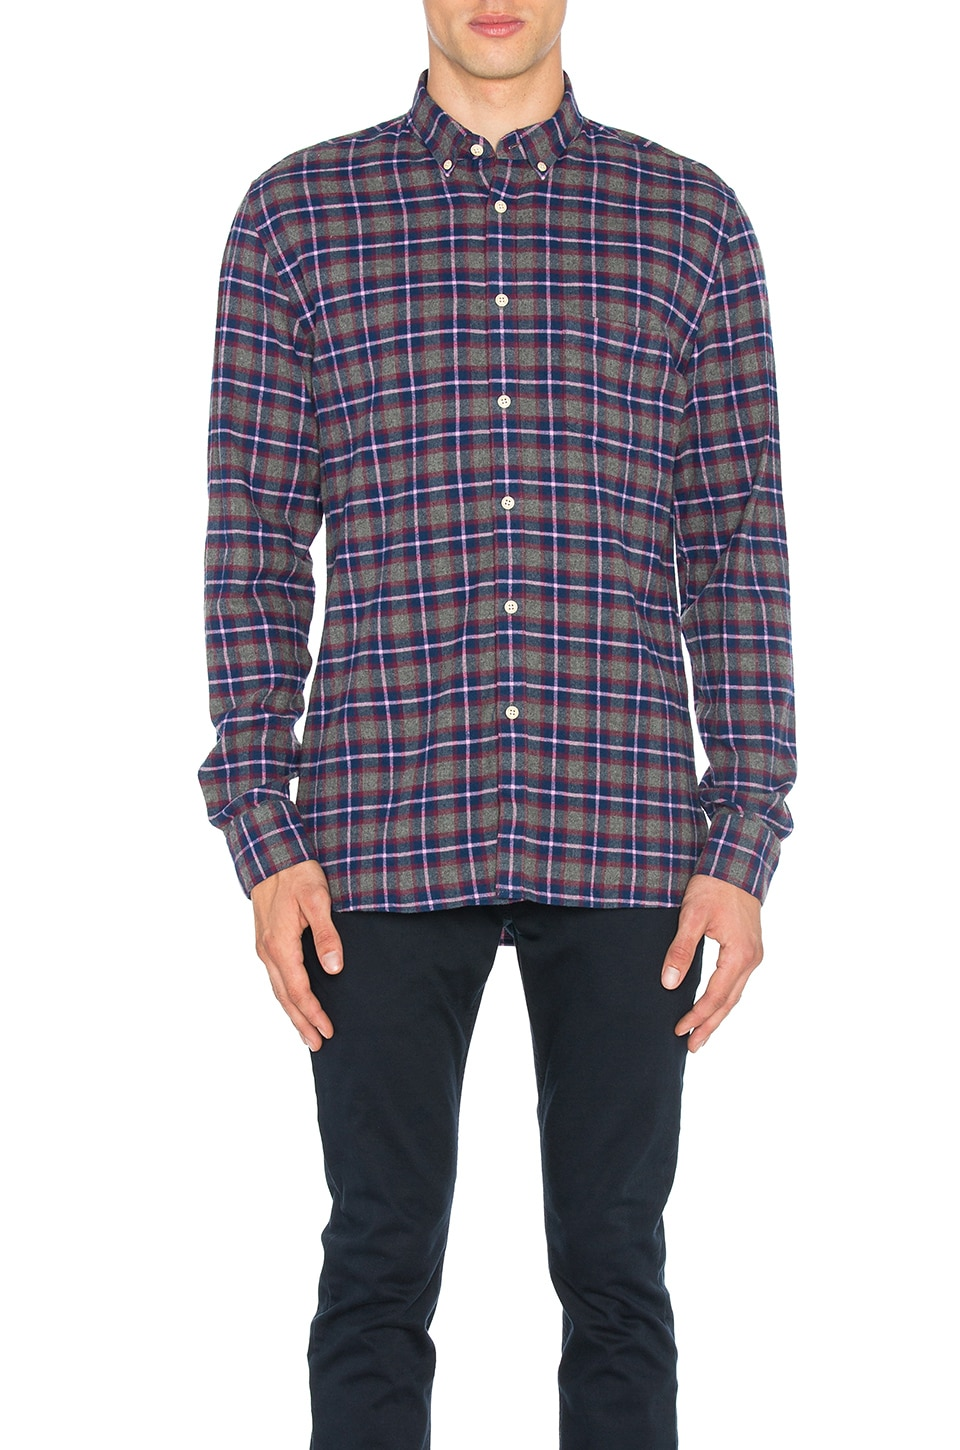 Cabin Long Sleeve Shirt by Barney Cools